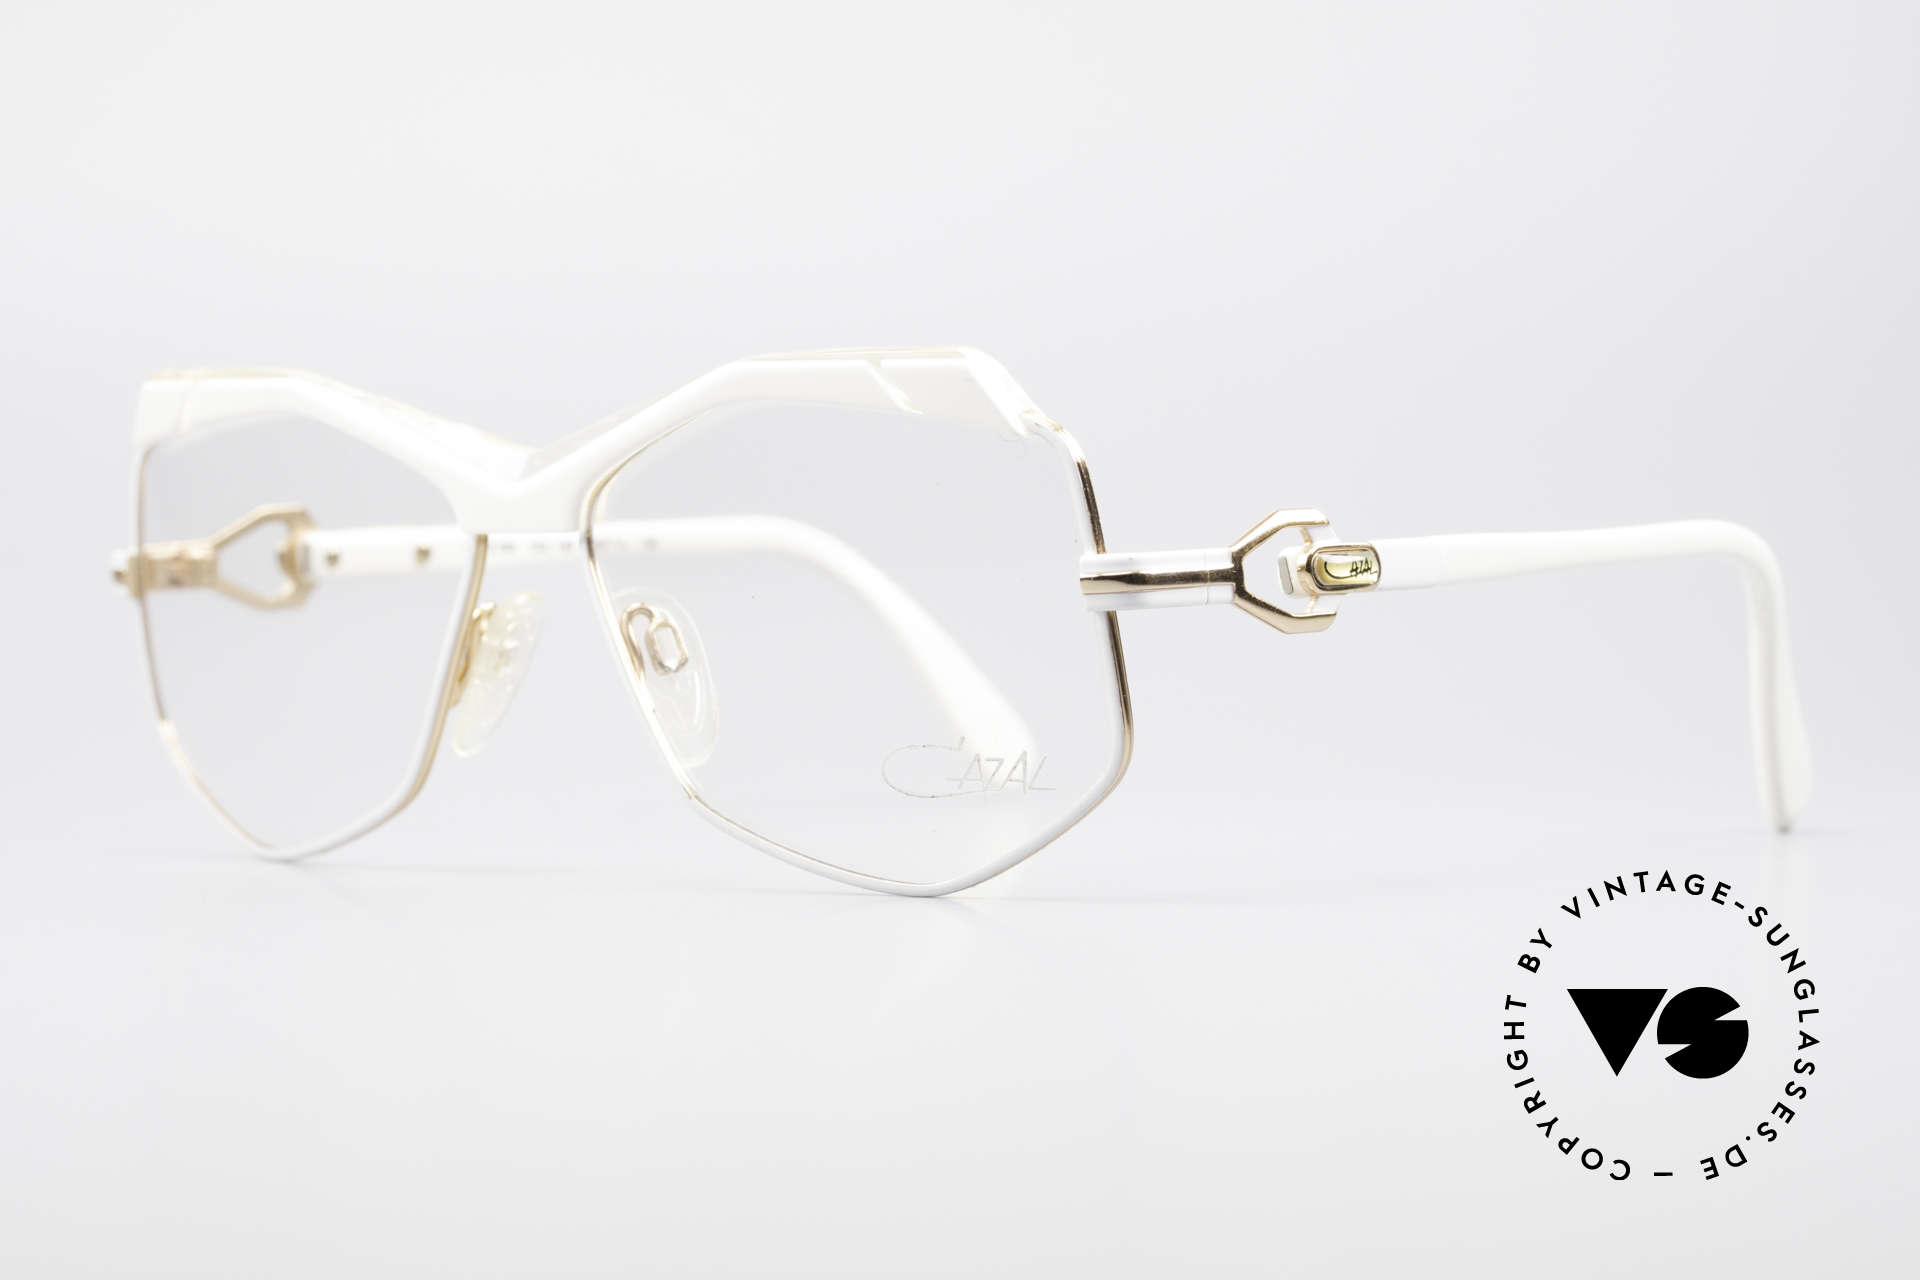 Cazal 230 80's Hip Hop Vintage Frame, accessory of the US HipHop scene in the 1980's, Made for Women